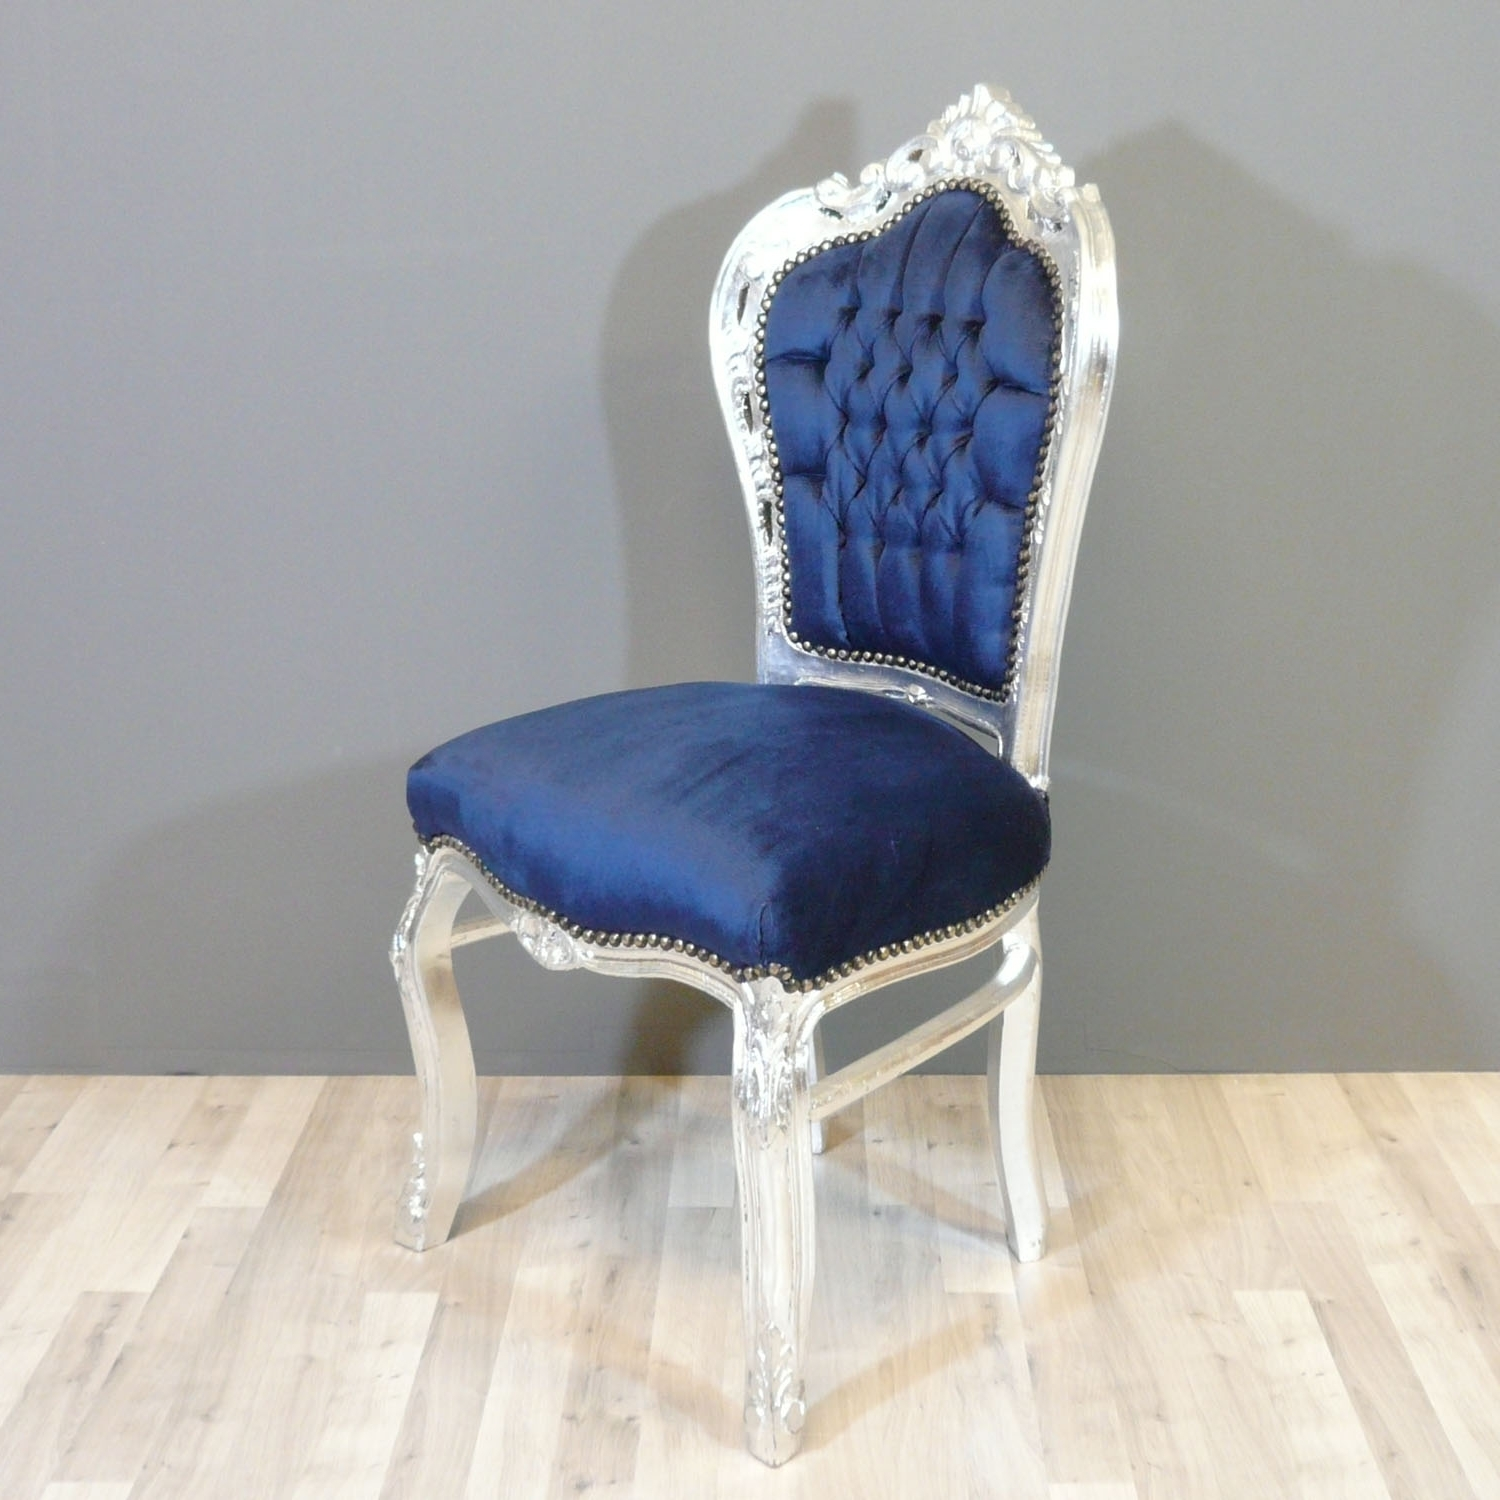 2017 Blue Chaises Throughout Baroque Blue Chair – Chairs Baroque (View 5 of 15)